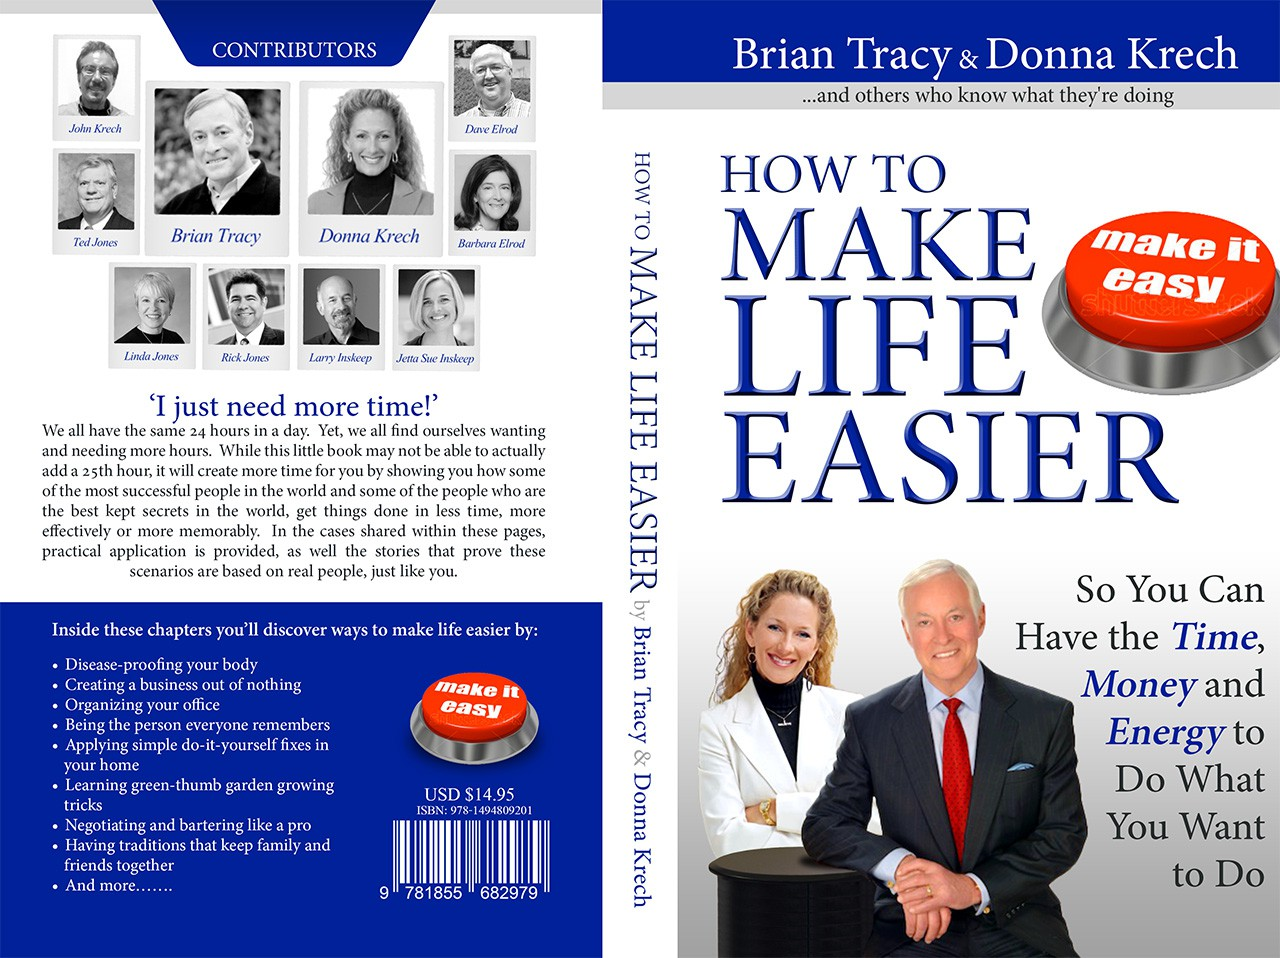 Book Cover (Brian Tracy one of the authors)